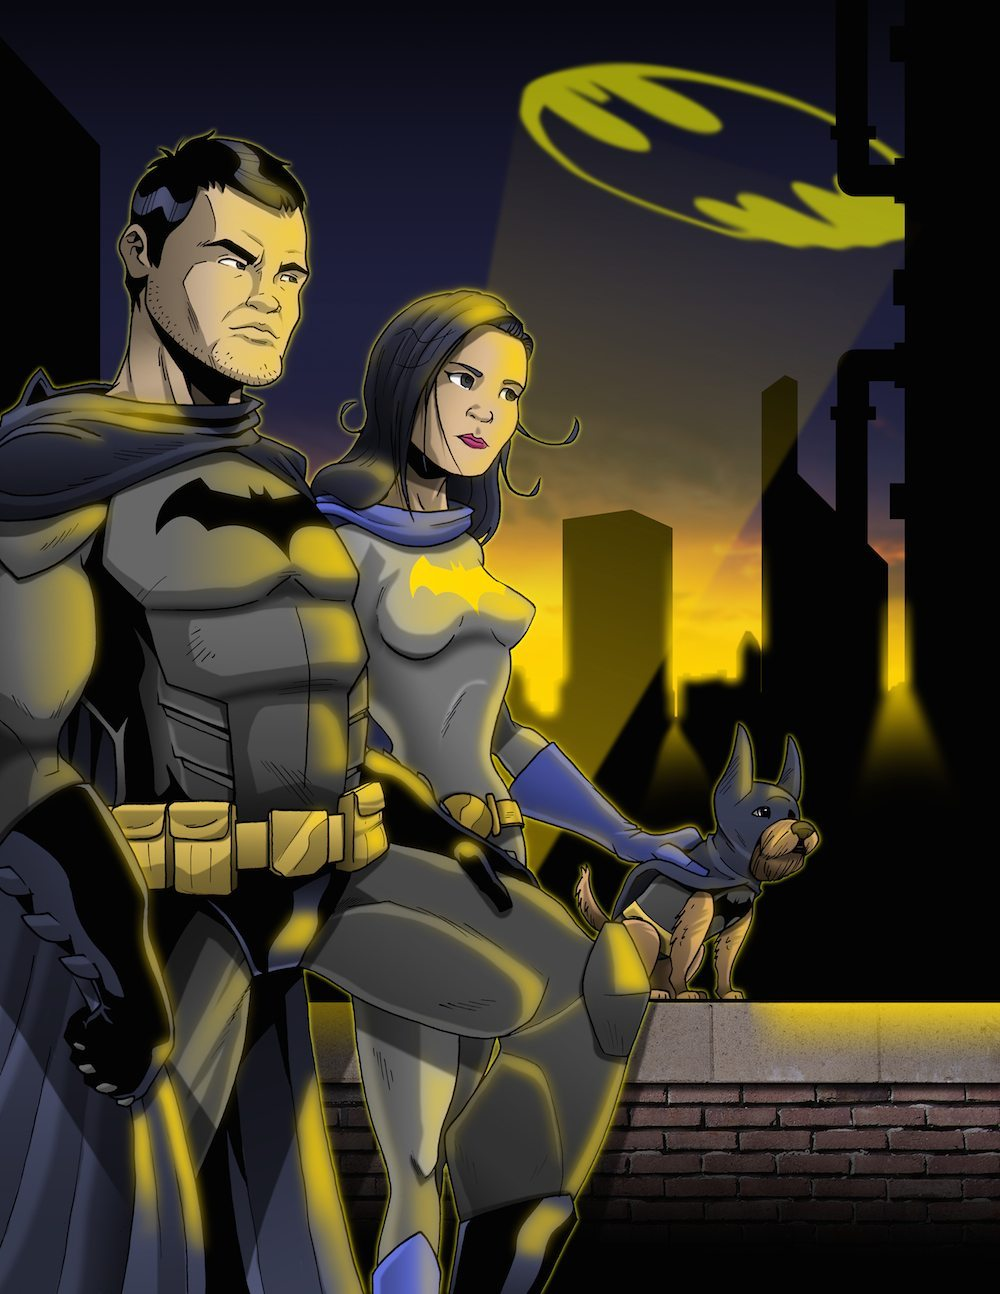 Portrait of a BatCouple and their BatDog by Clay Graham via ArtCorgi